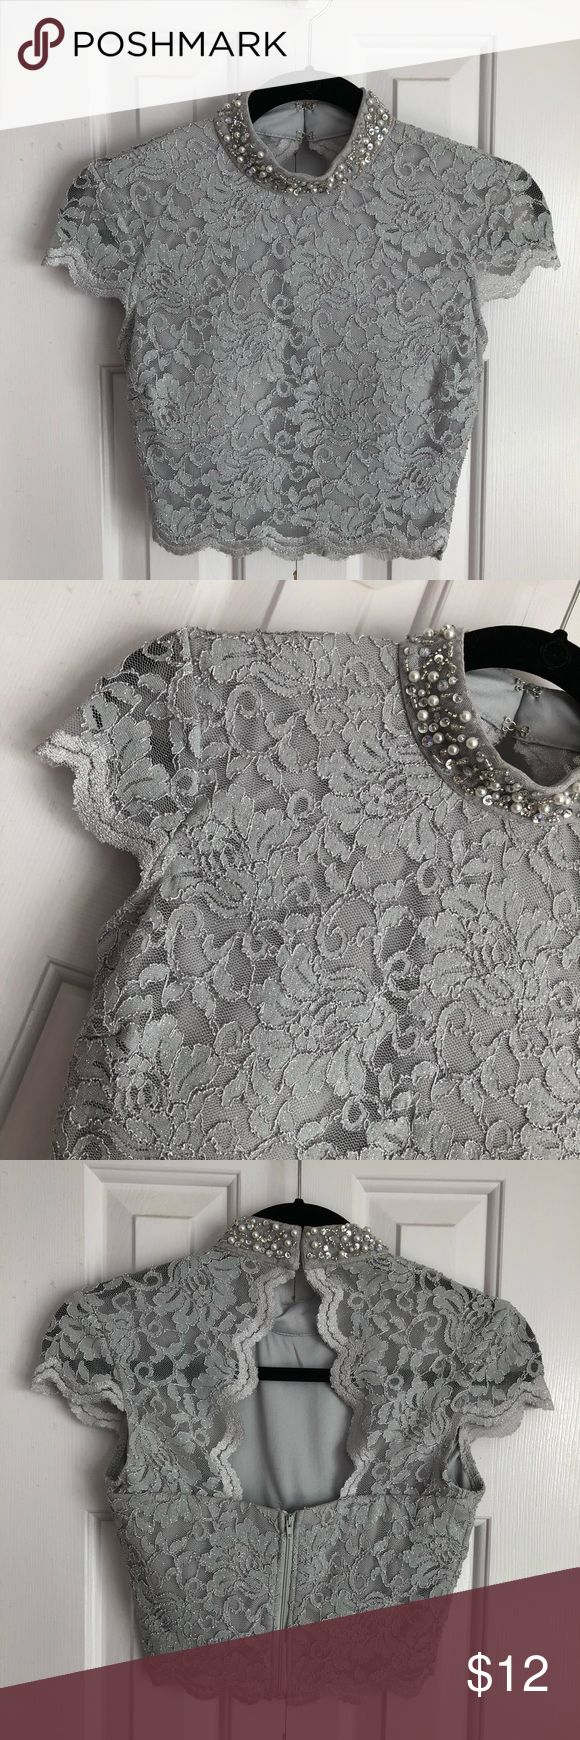 Gray Sliver Lace Dress Top Gray-silver glitter dress top with pearl and diamond embellishments! Detailed with laced back design and pearl neck decor! Also padded! Designed by City Studio for Macy's! BRAND NEW!! Macy's Dresses Prom